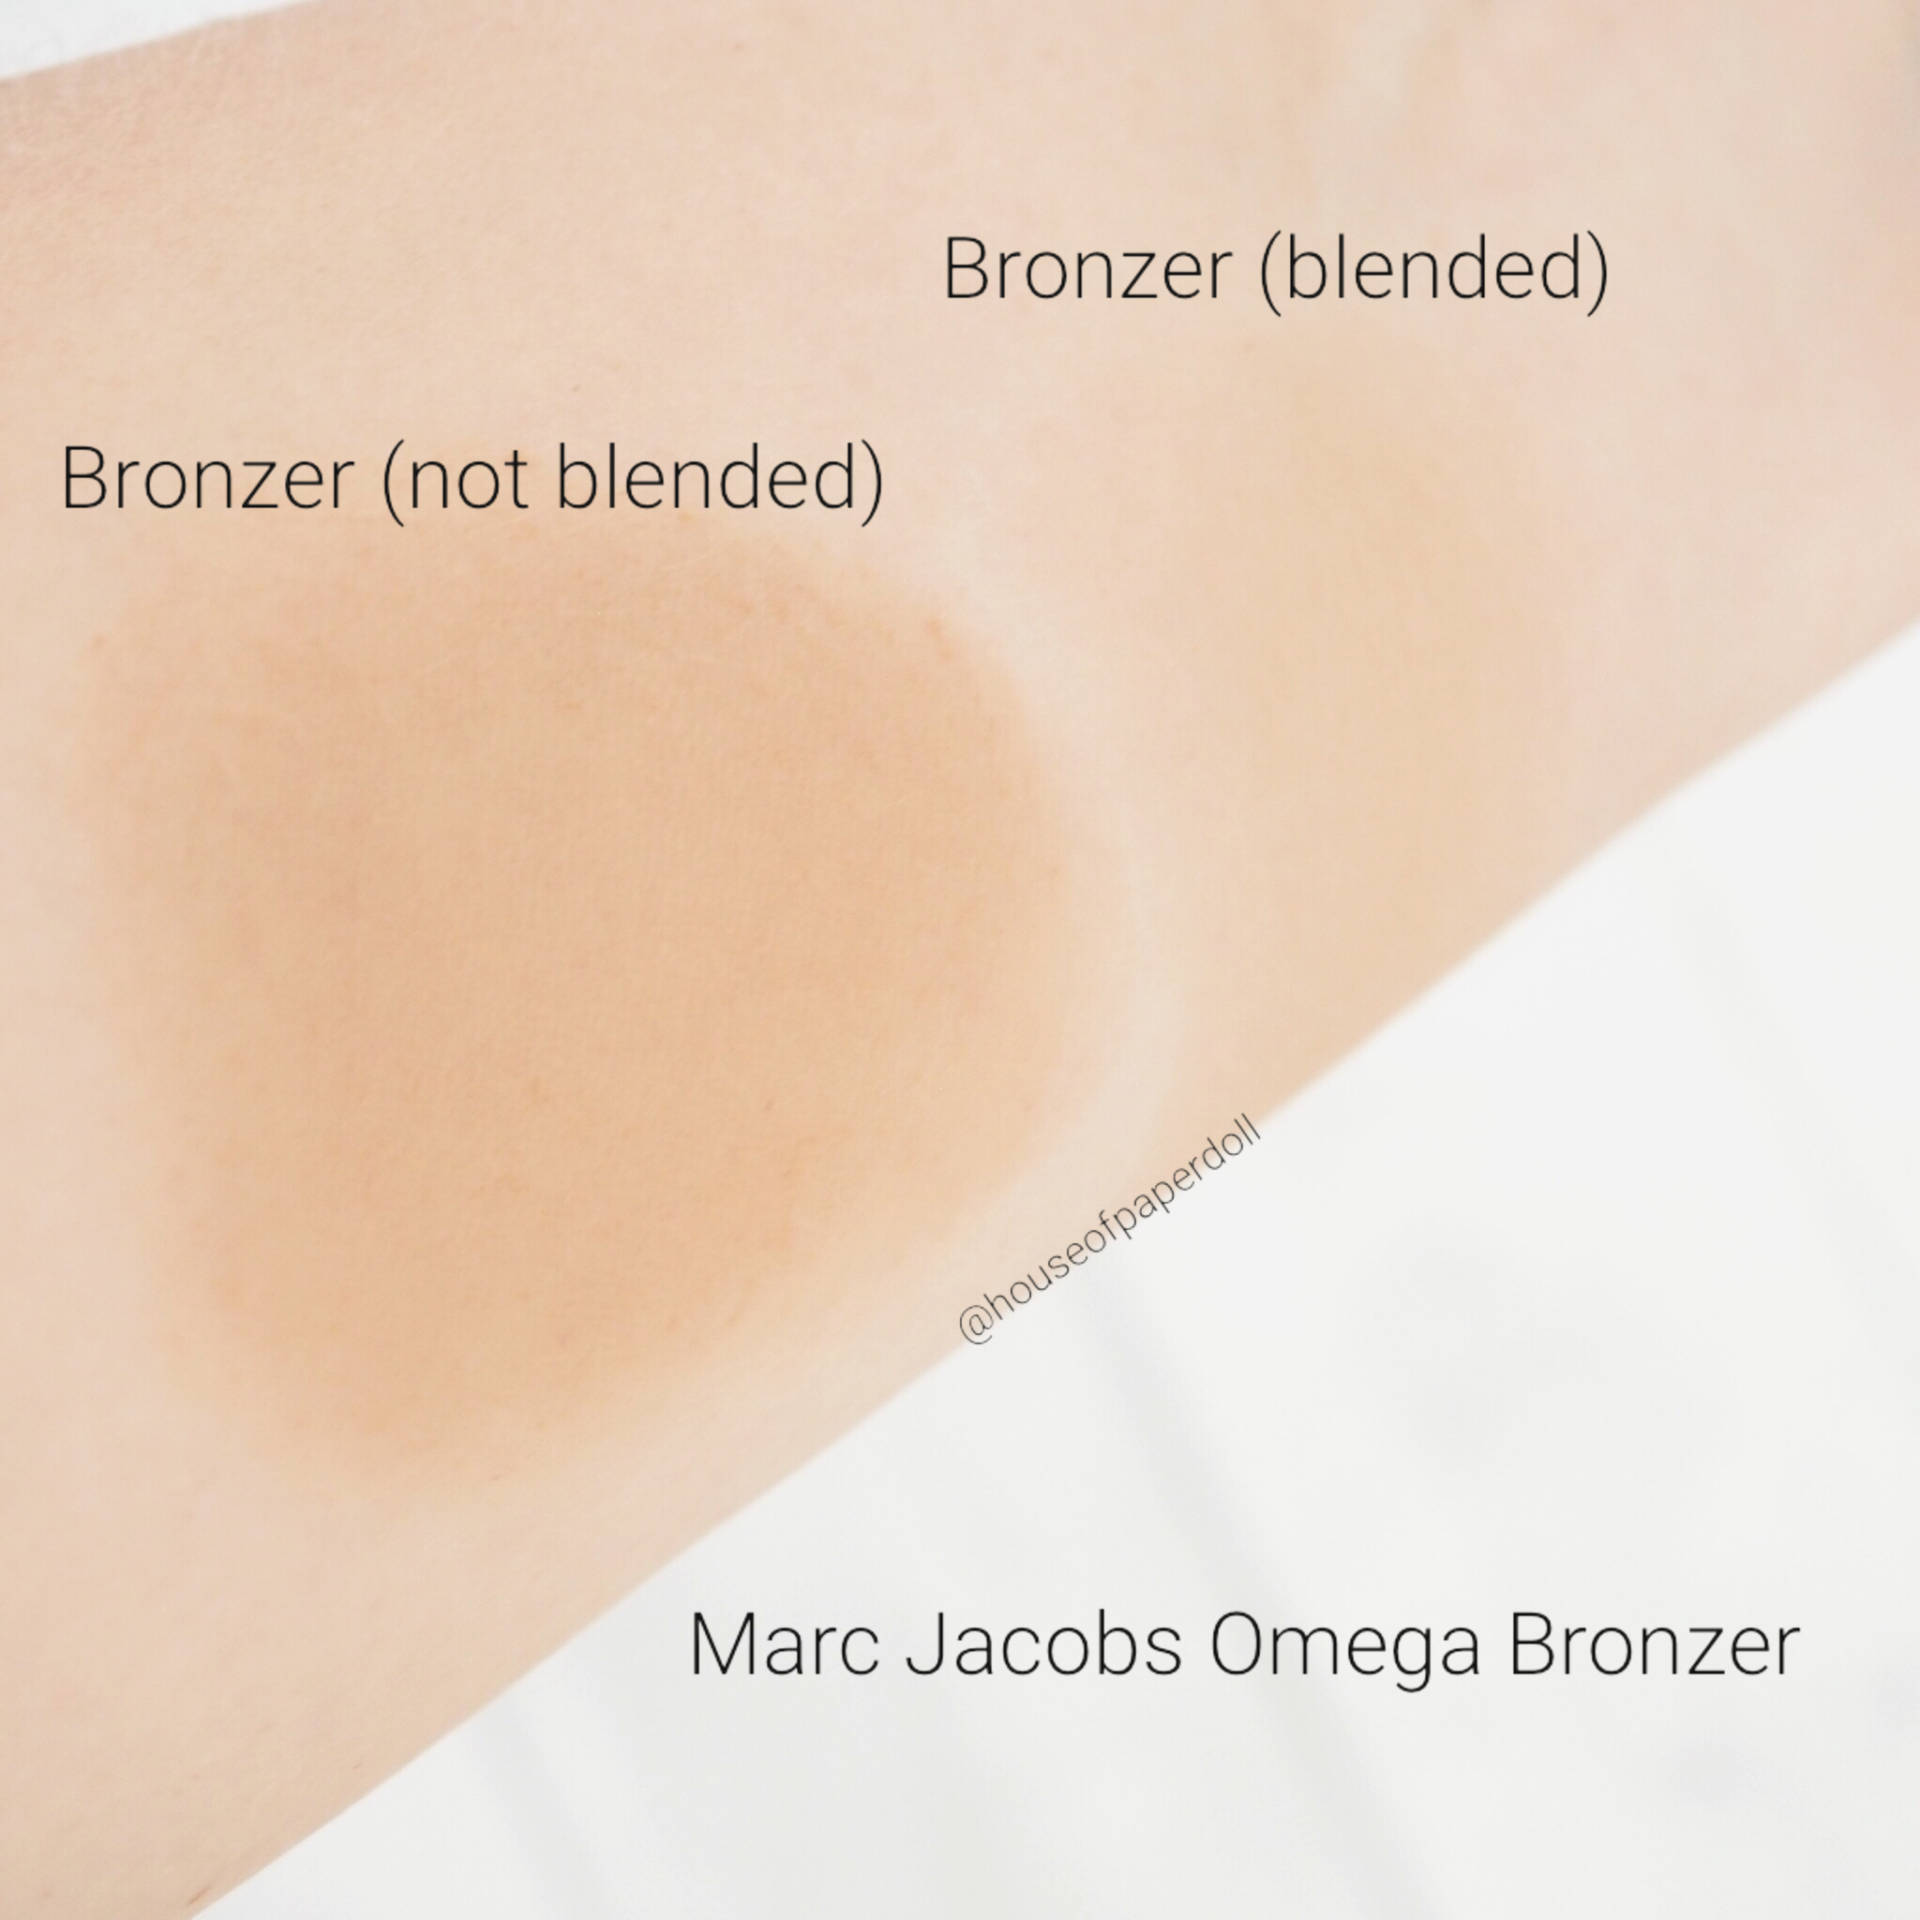 O!Mega Bronzer Coconut Perfect Tan by Marc Jacobs Beauty #9